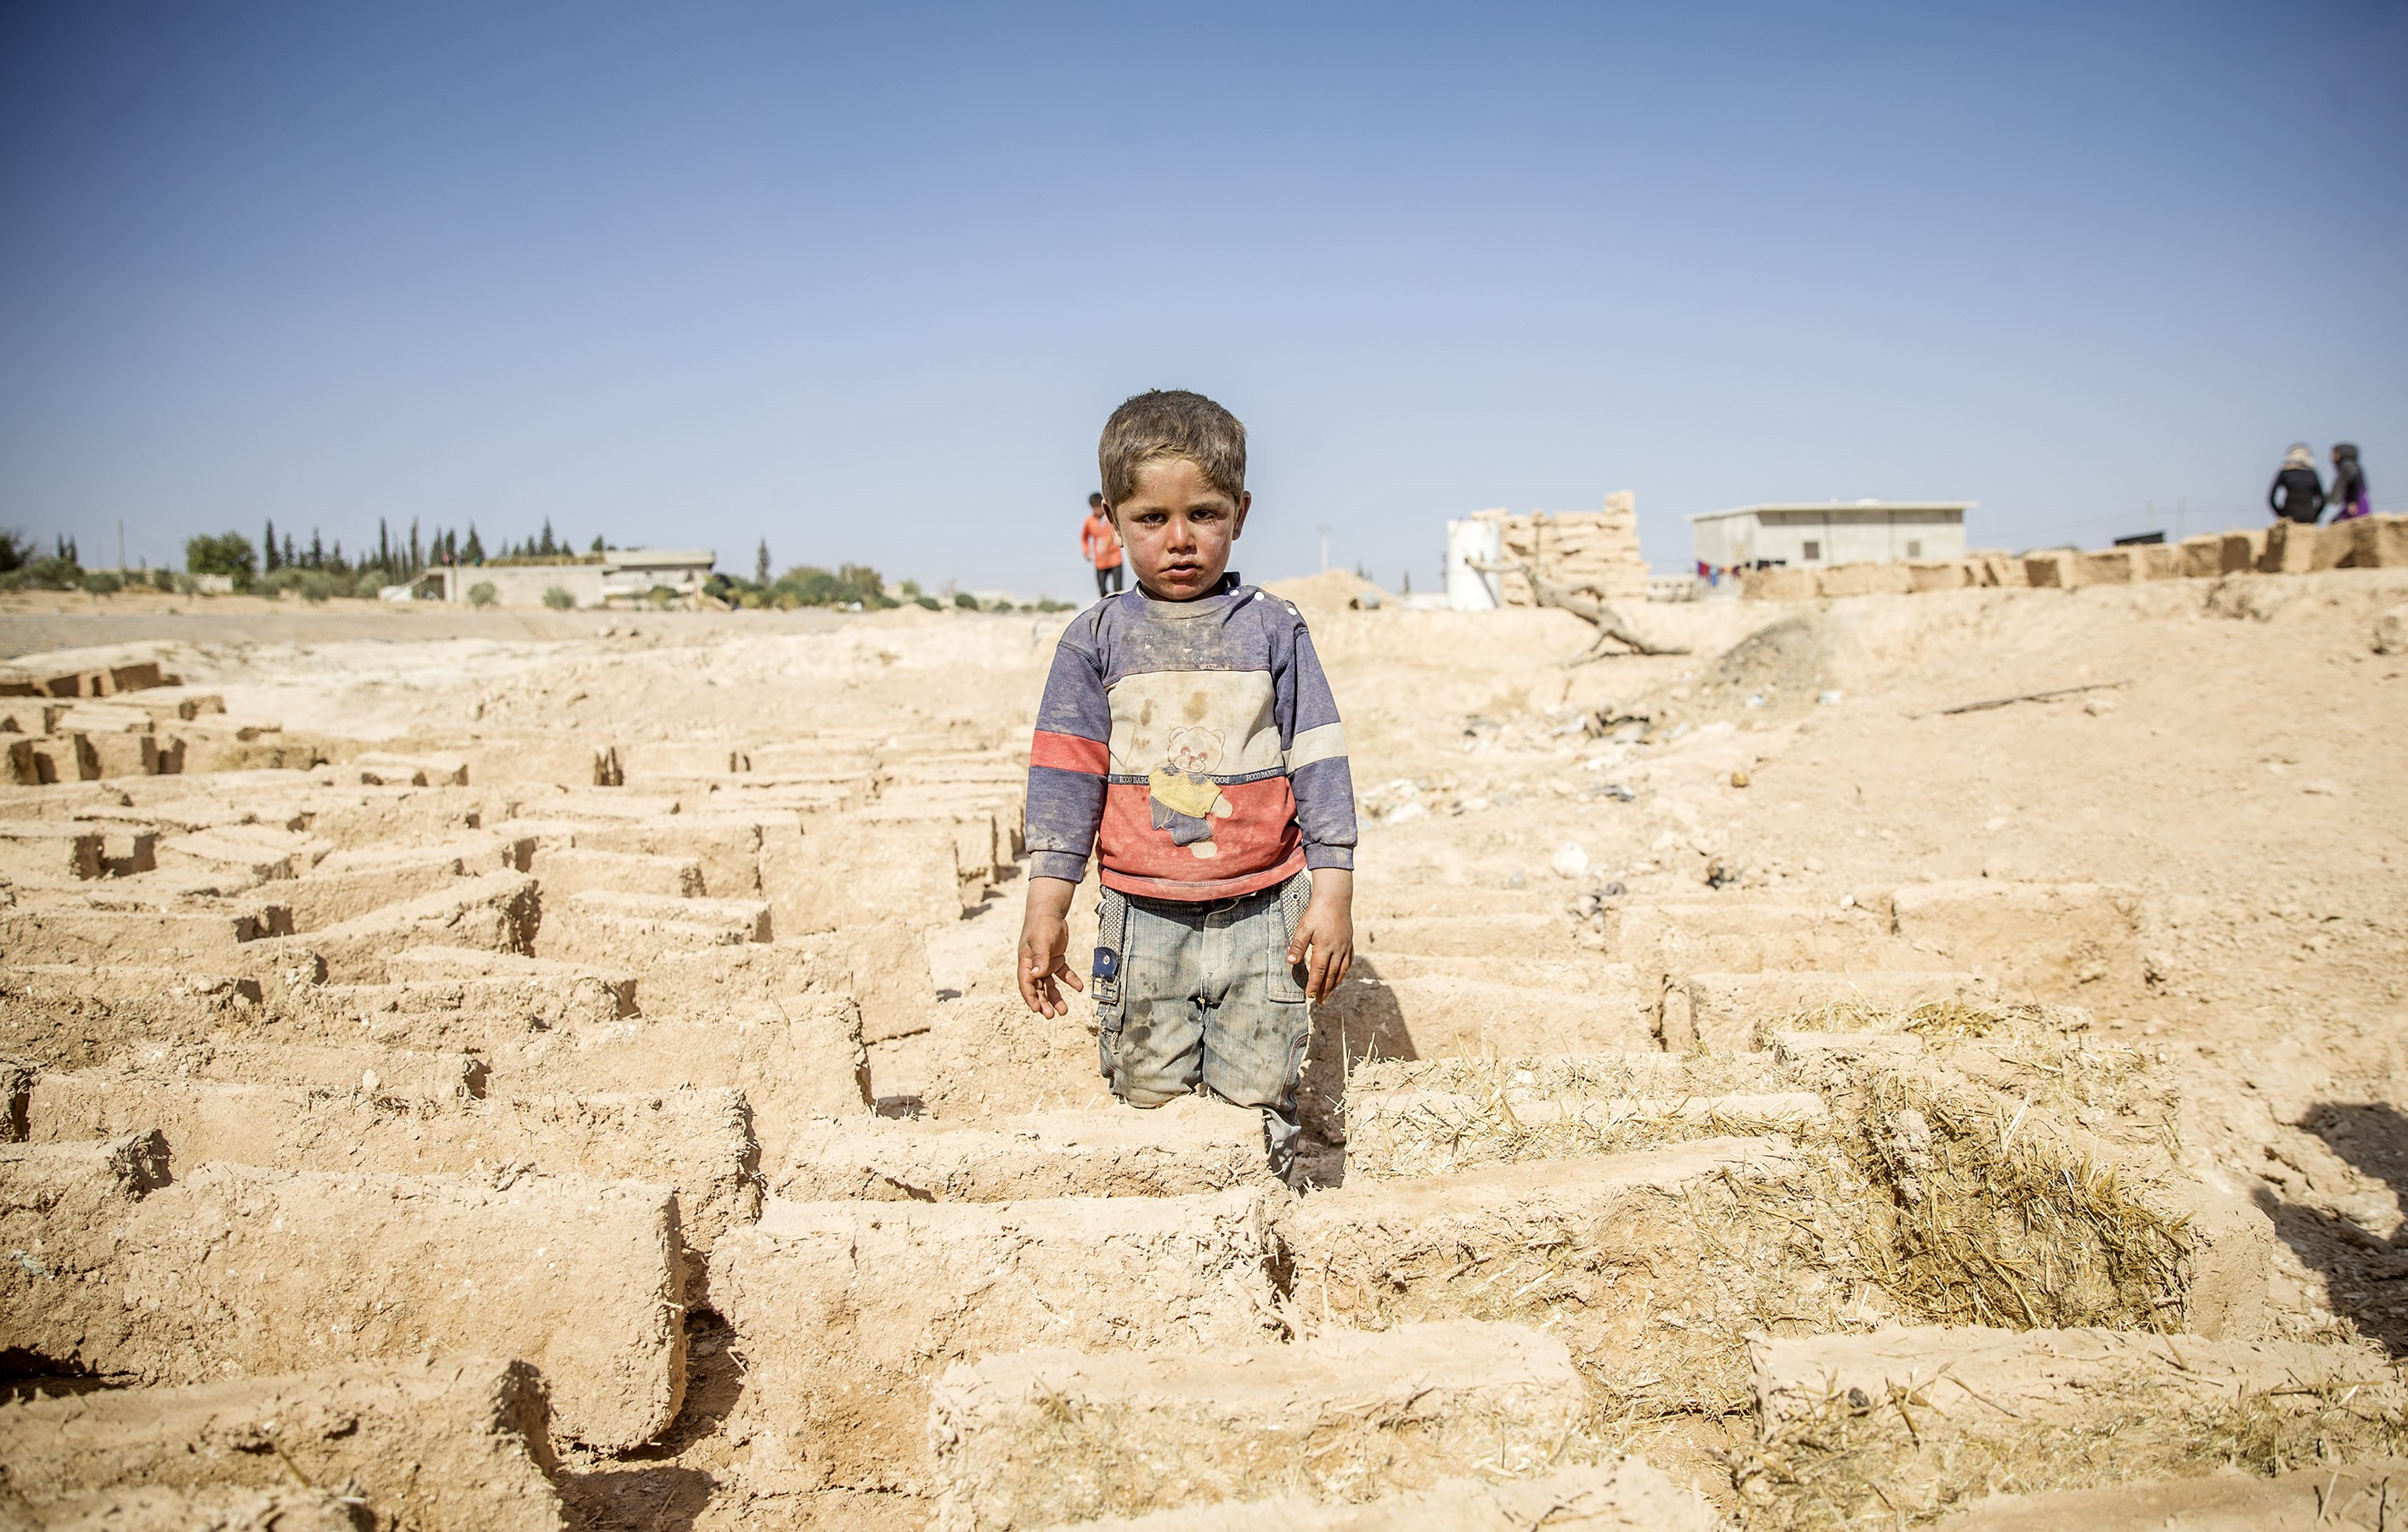 A small Syrian boy standing in a desert-like place.